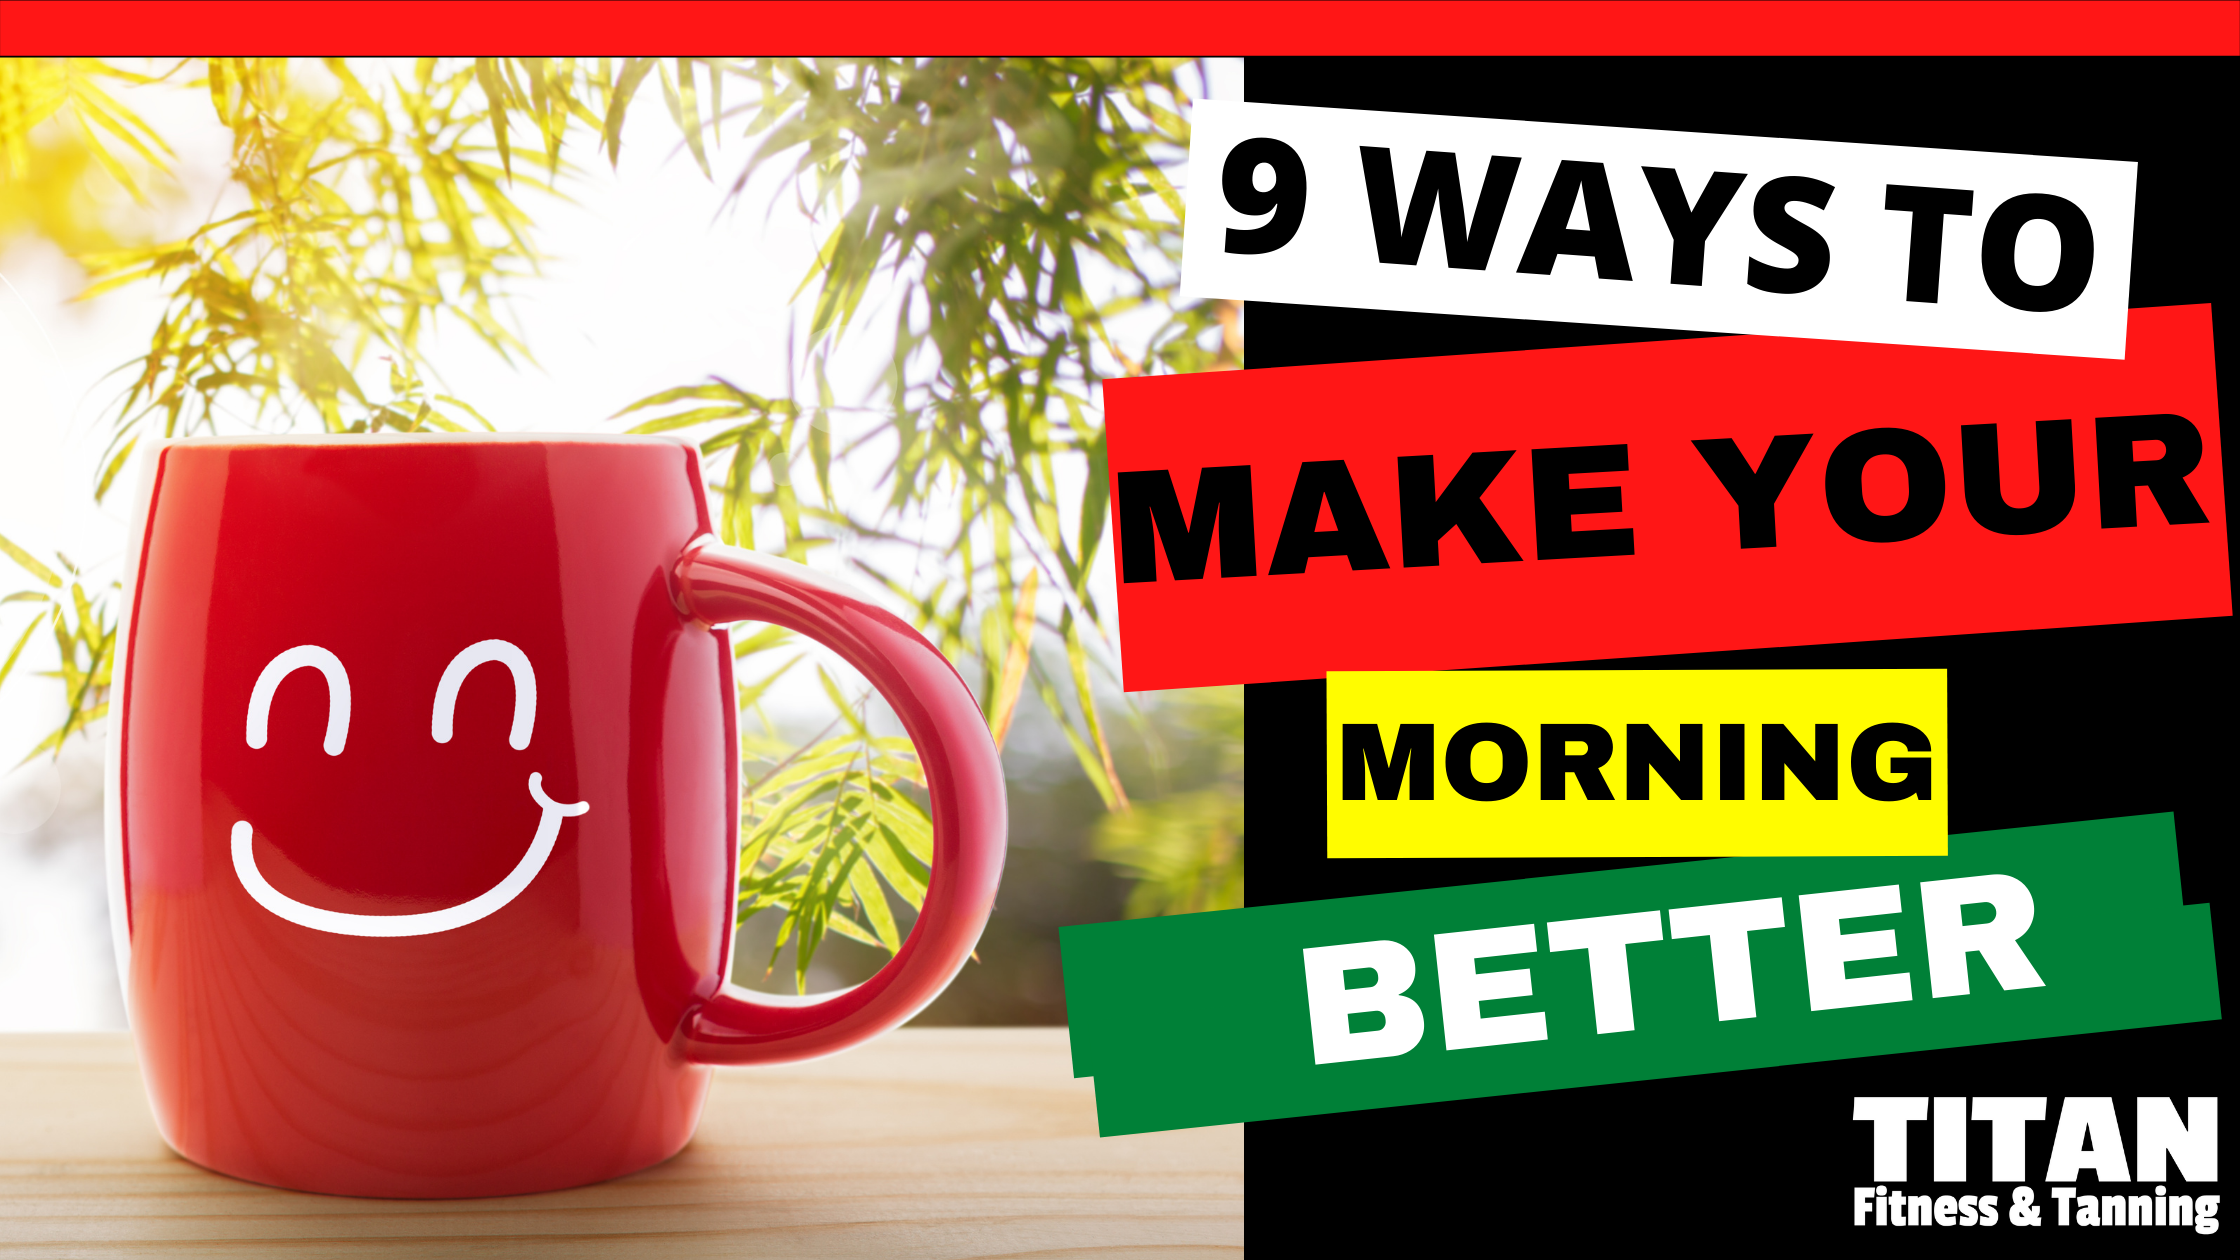 9 Ways to Make Your Morning Better